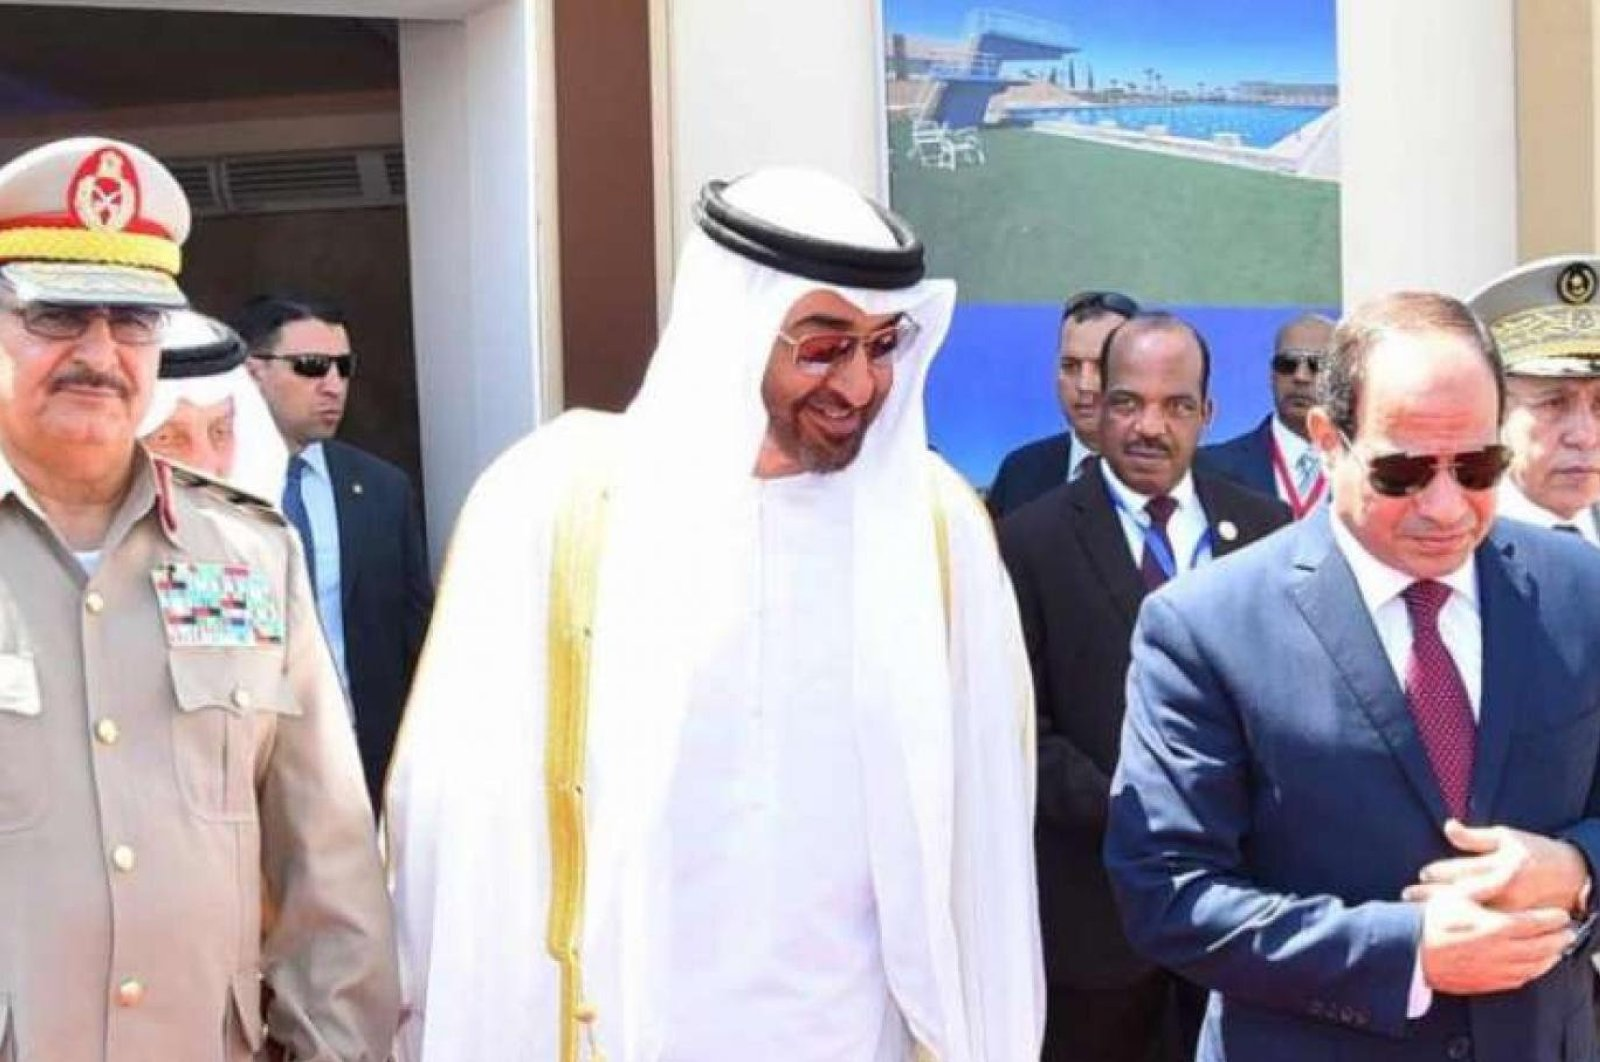 In this July 22, 2017, file photo, Egyptian President Abdel-Fattah el-Sissi (R), Crown Prince of Abu Dhabi Mohammed bin Zayed (C) and Libyan warlord Khalifa Haftar (L) attend the opening of the Mohamed Najib Military Base, El Hammam, Marsa Matrouh, Egypt. (The Egyptian Presidency / Reuters)